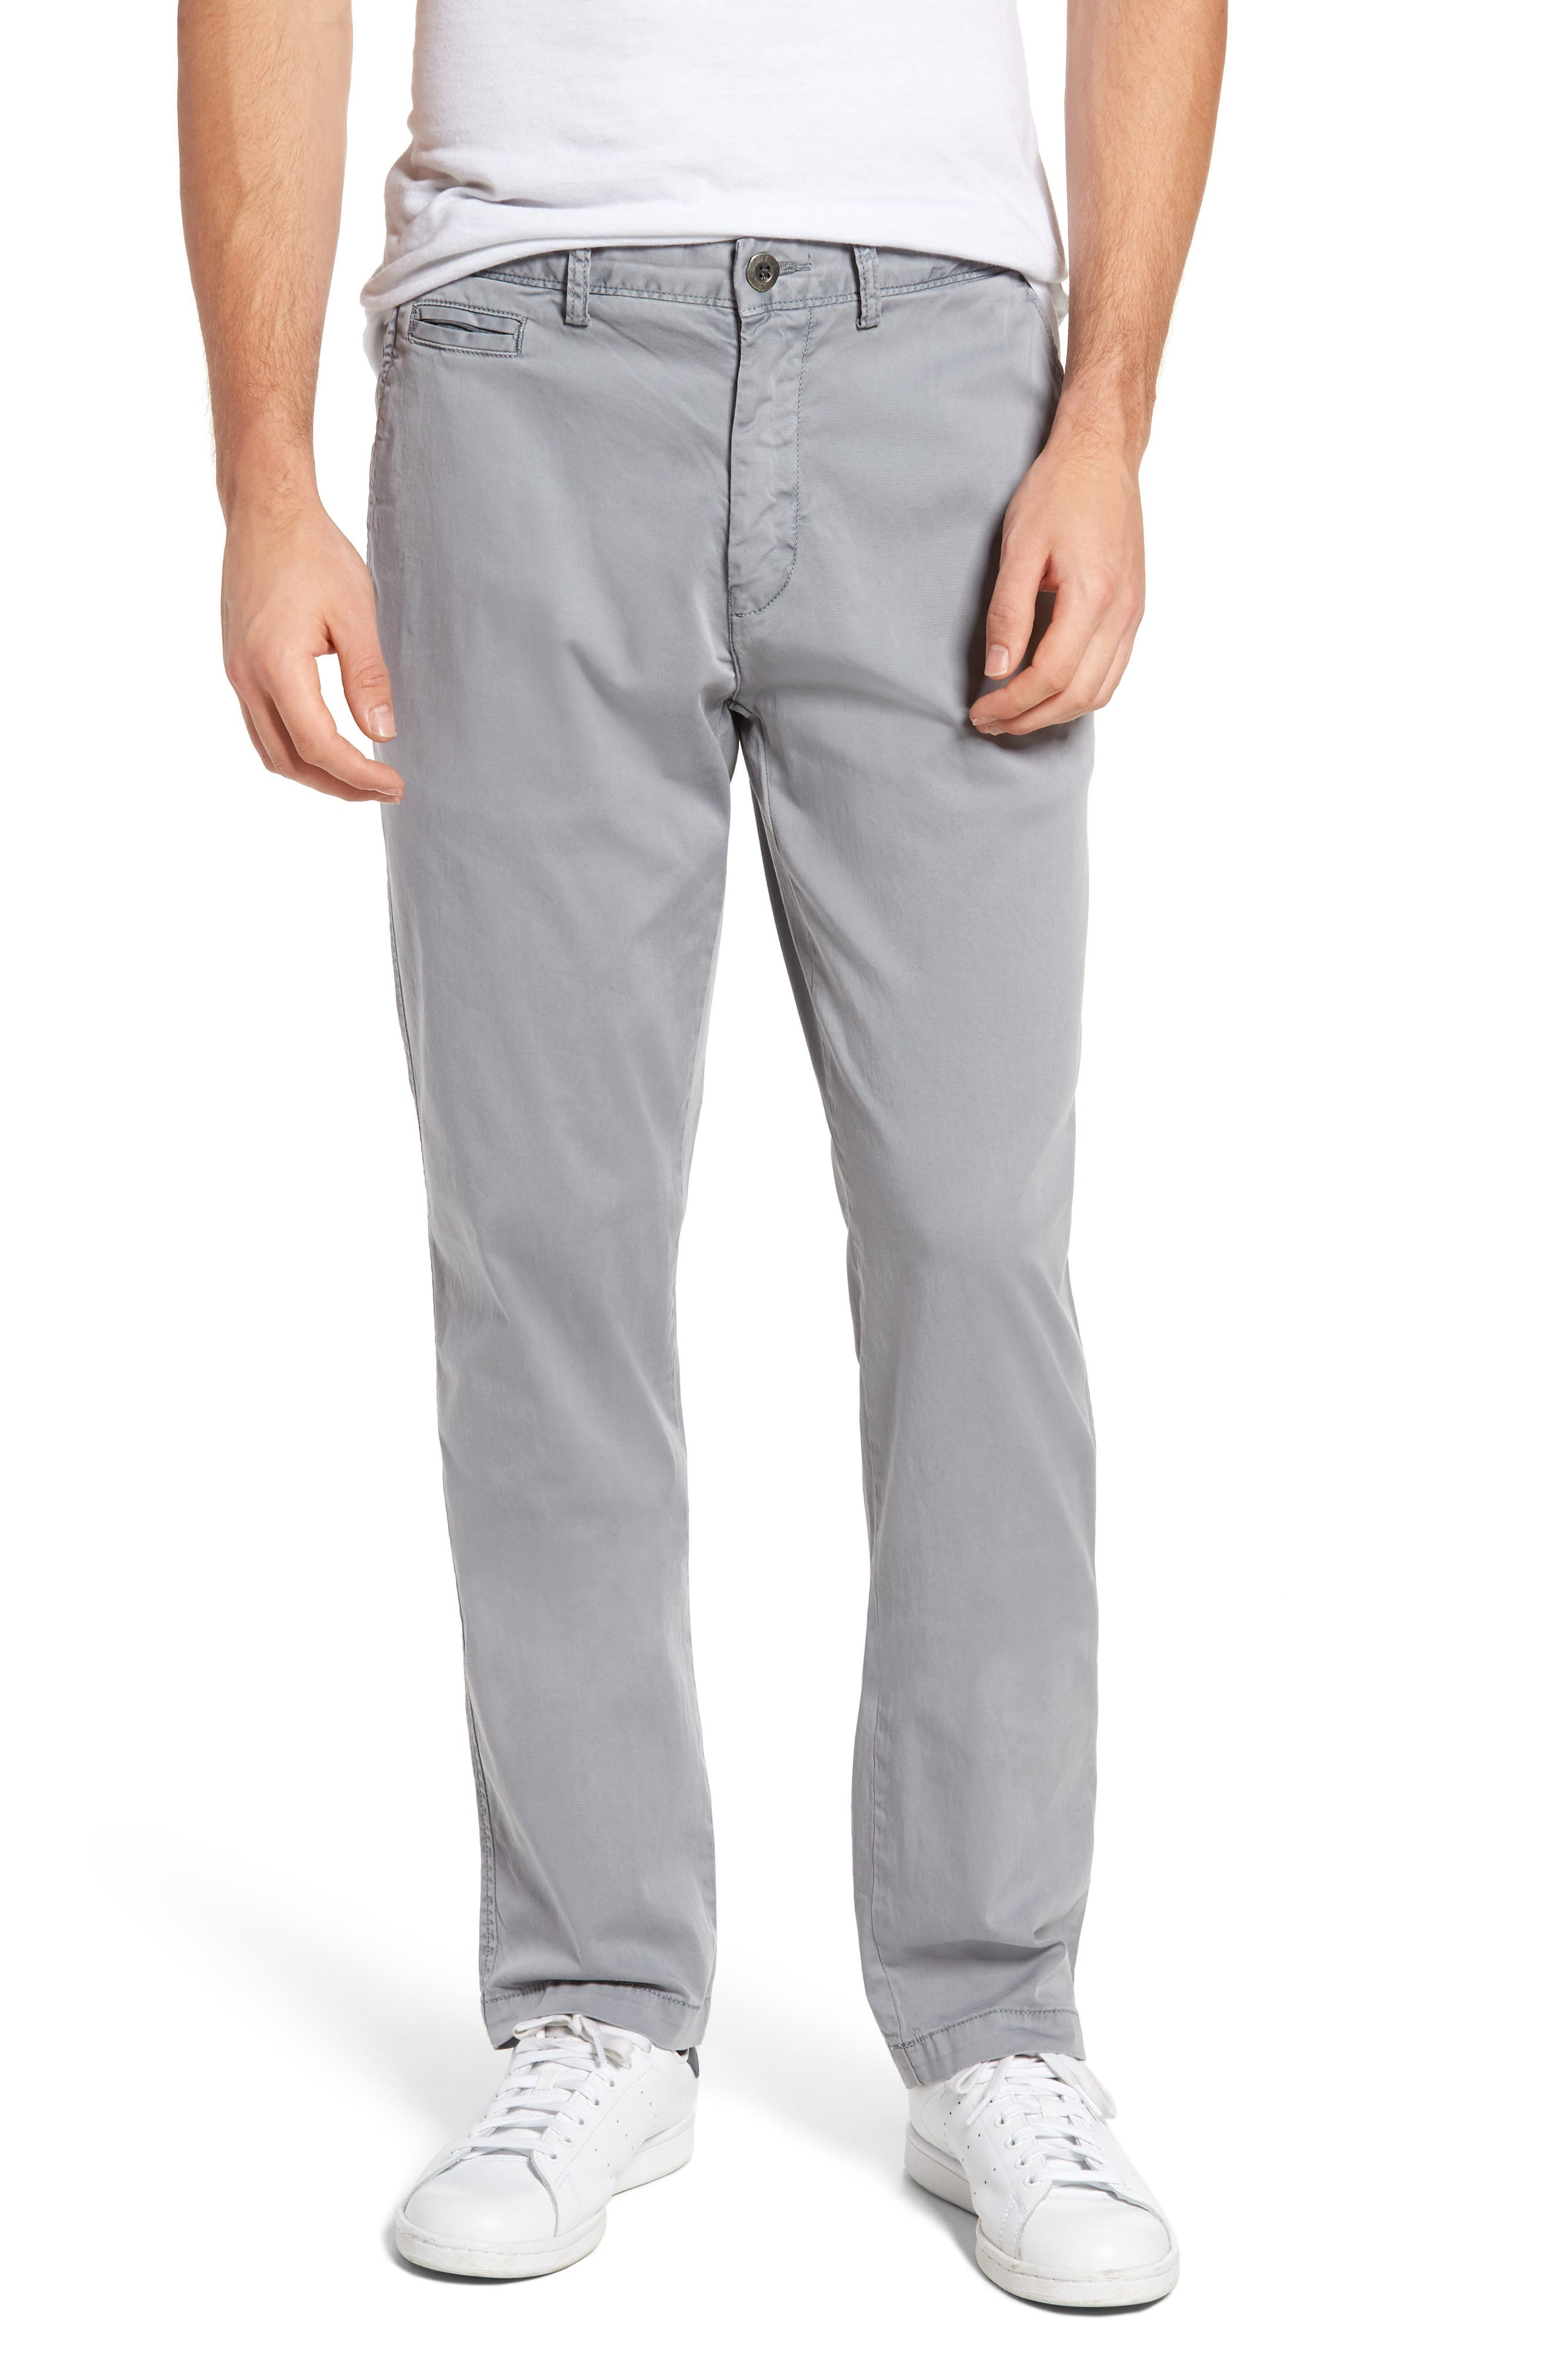 Belmont Stretch Chino Pants,                         Main,                         color, 020